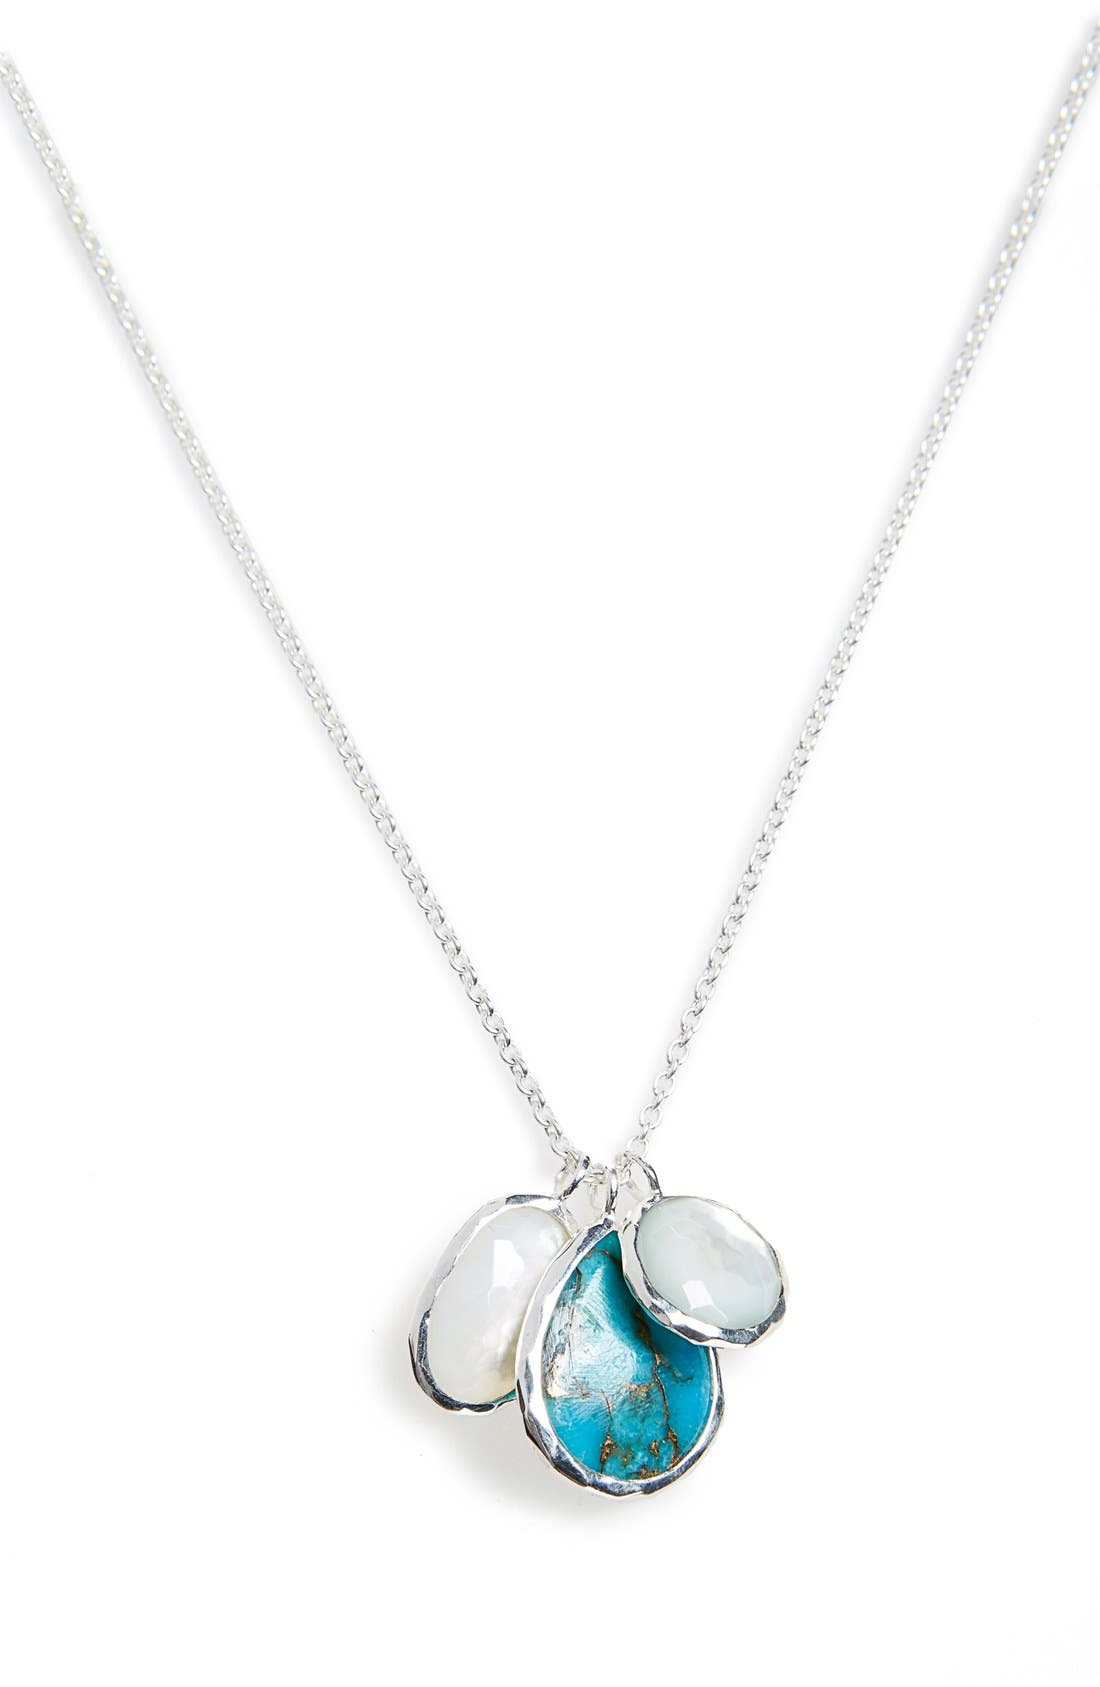 Main Image - Ippolita 'Wonderland' Triple Charm Necklace (Nordstrom Exclusive)